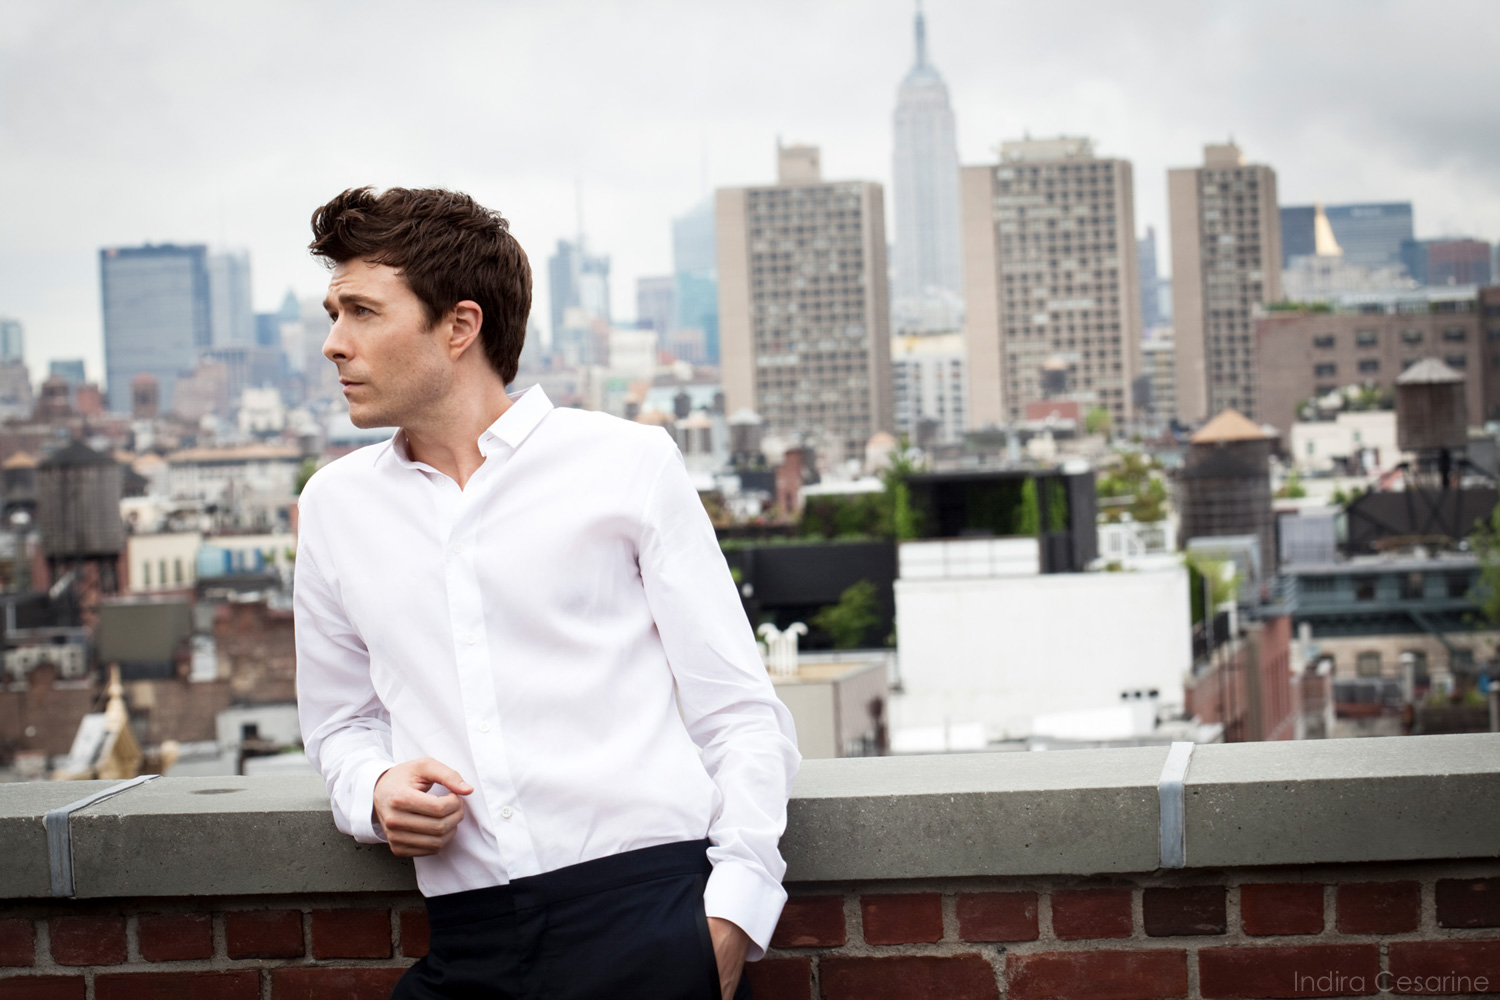 Noah-Bean-Photography-by-Indira-Cesarine-011.jpg